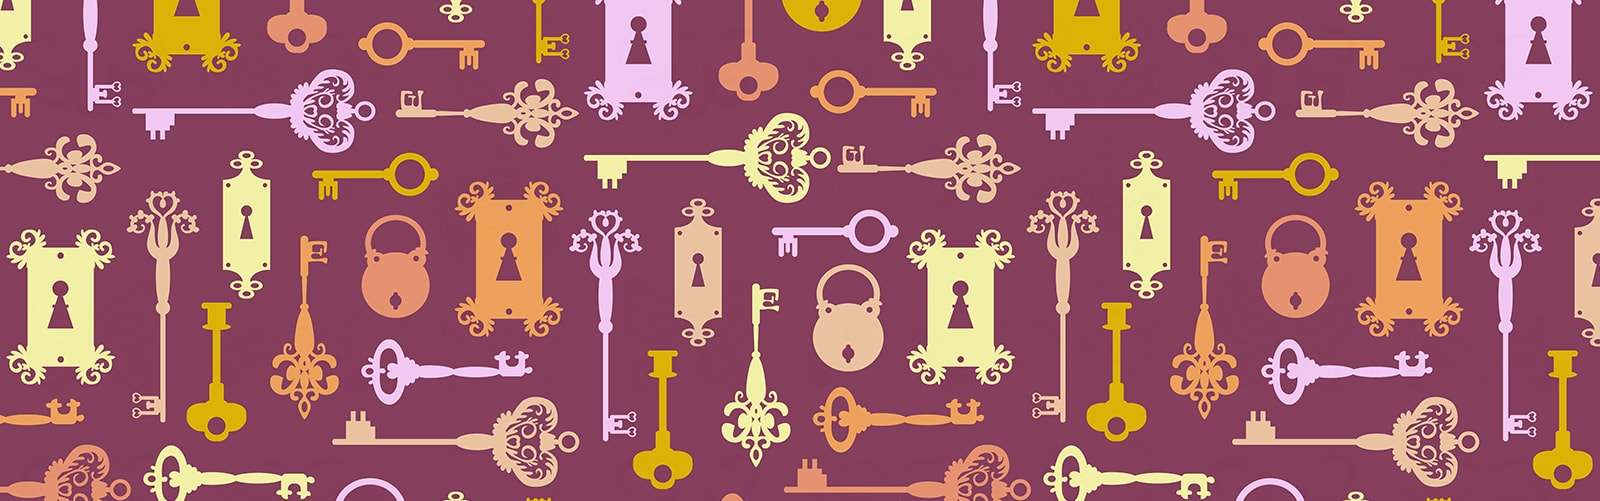 Pink header with a number of different types of keys representing an article about where to find privacy policies